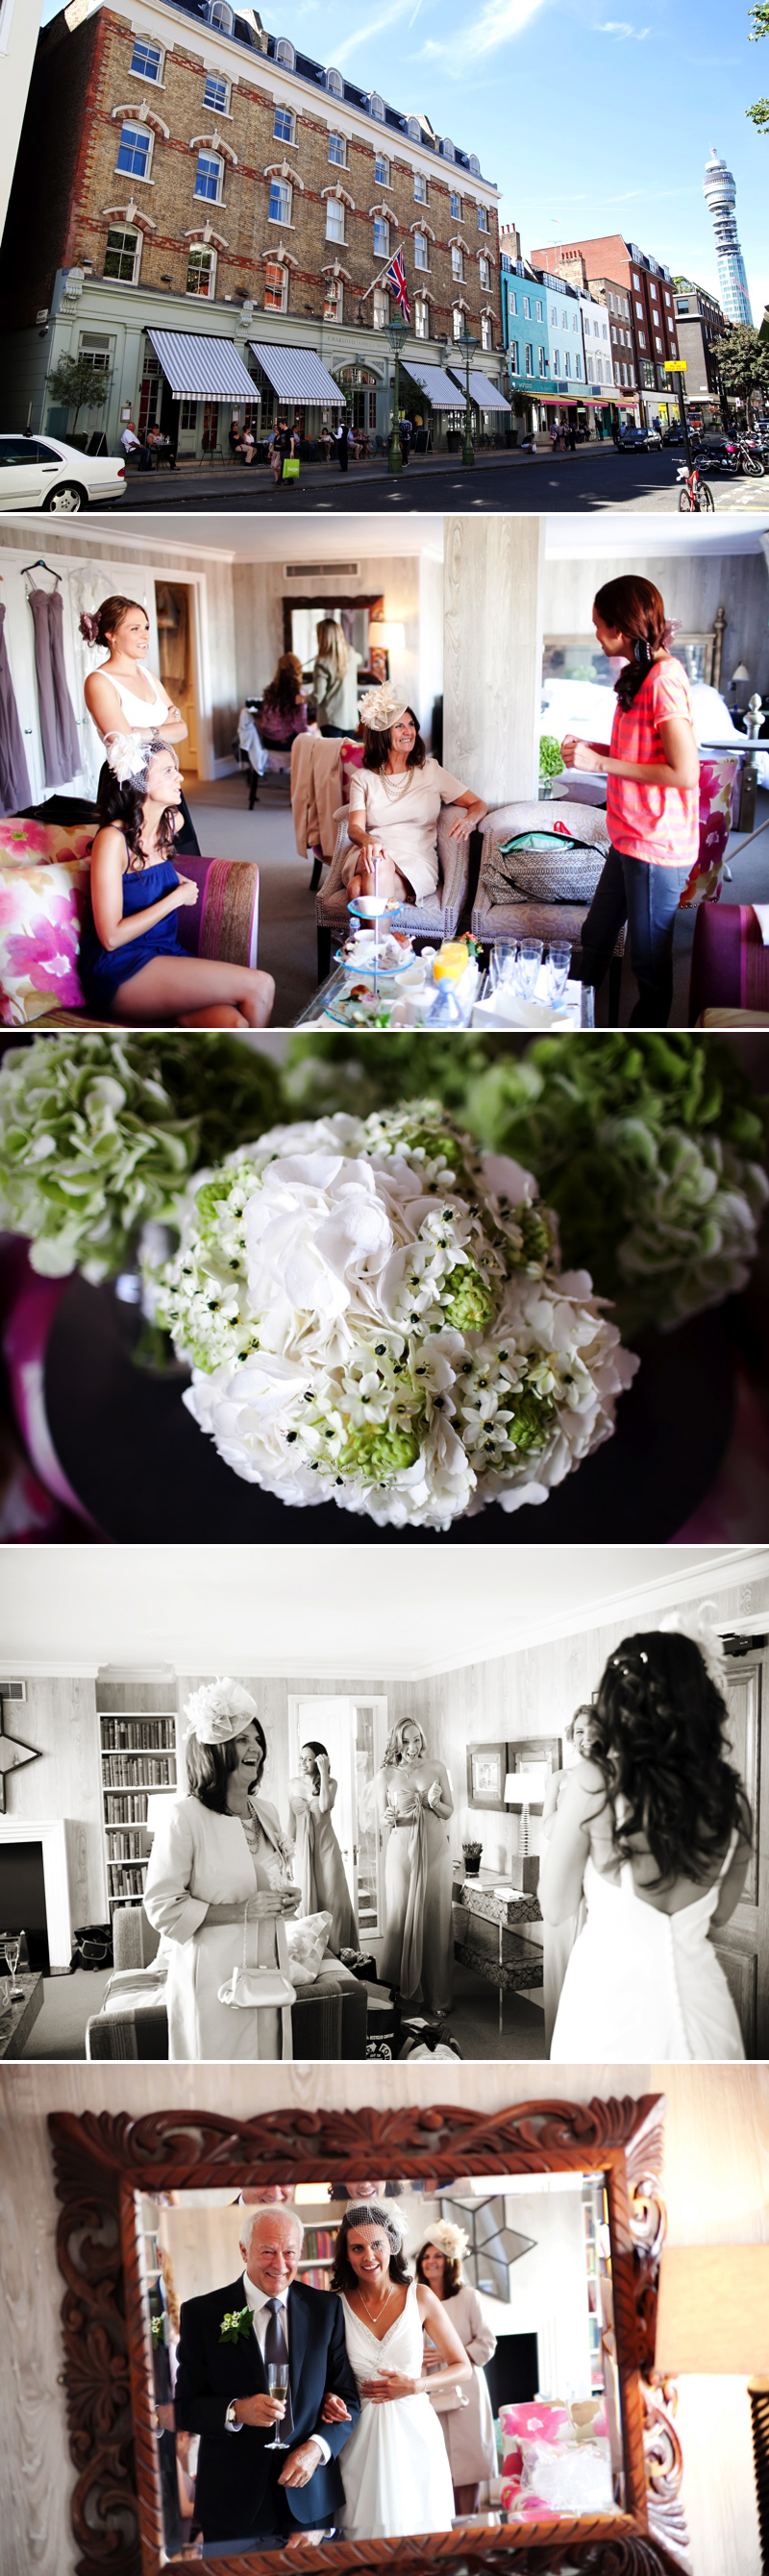 wedding-venues-in-london-institute-of-contemporary-arts-elegant-modern-wedding-001a